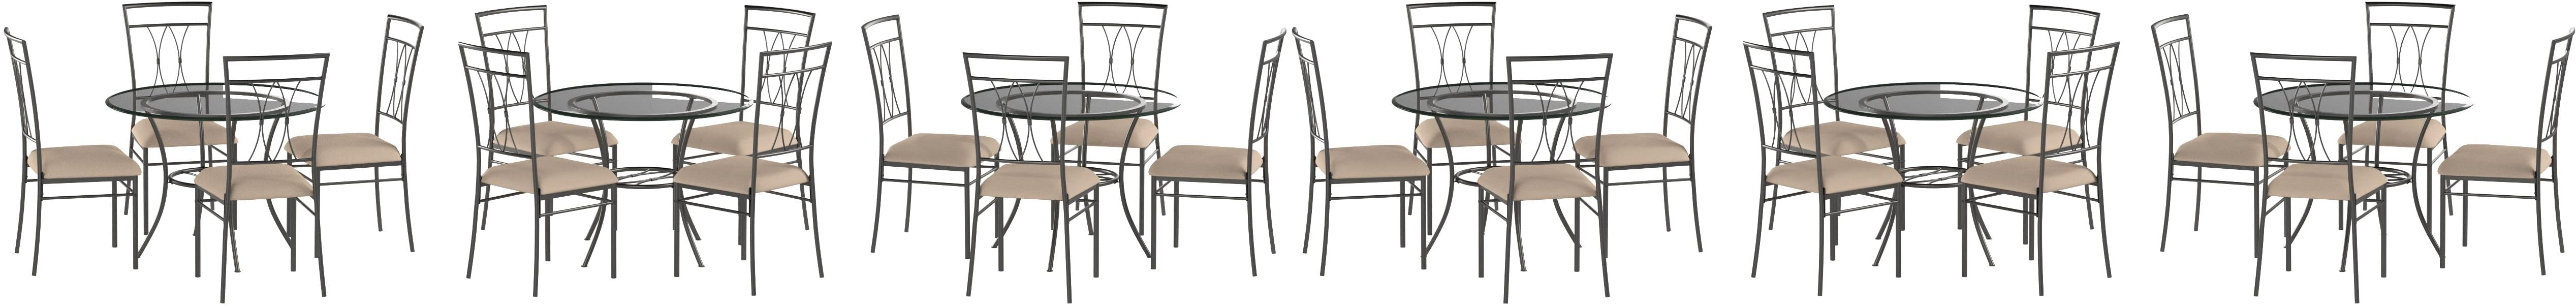 Amazon Com Mss 5 Piece Glass And Metal Dining Set Includes Table And 4 Chairs Solid Metal Tubing Easy Assembly Upholstered Seat Cushions Comfortably Seats Four People With 42 Inch Round Table Surface